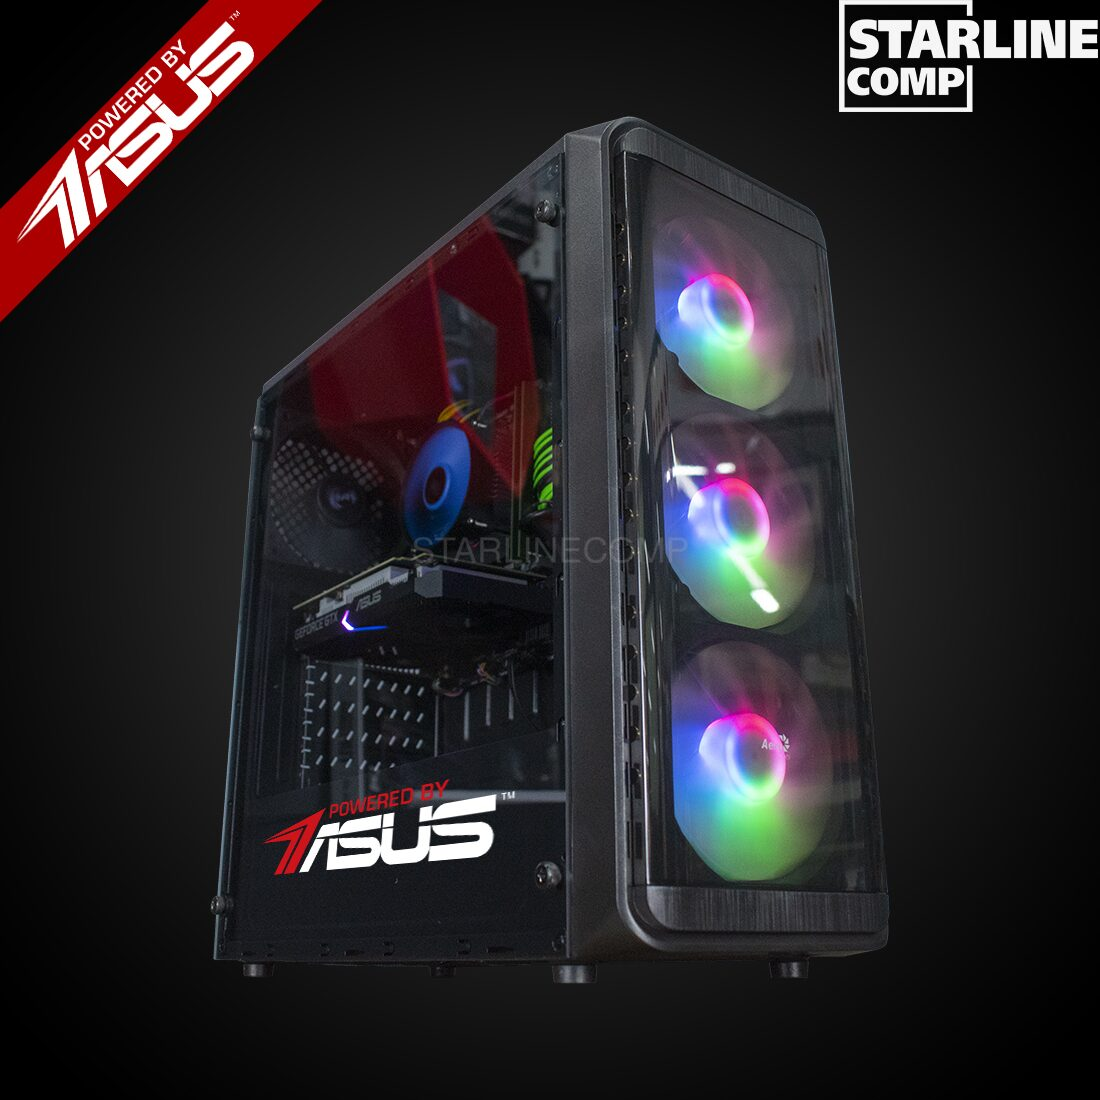 POWERED BY ASUS!!! Intel Core I3-10100F, 16Gb RAM GTX 1650 4Gb, SSD 120gb,HDD 1000gb